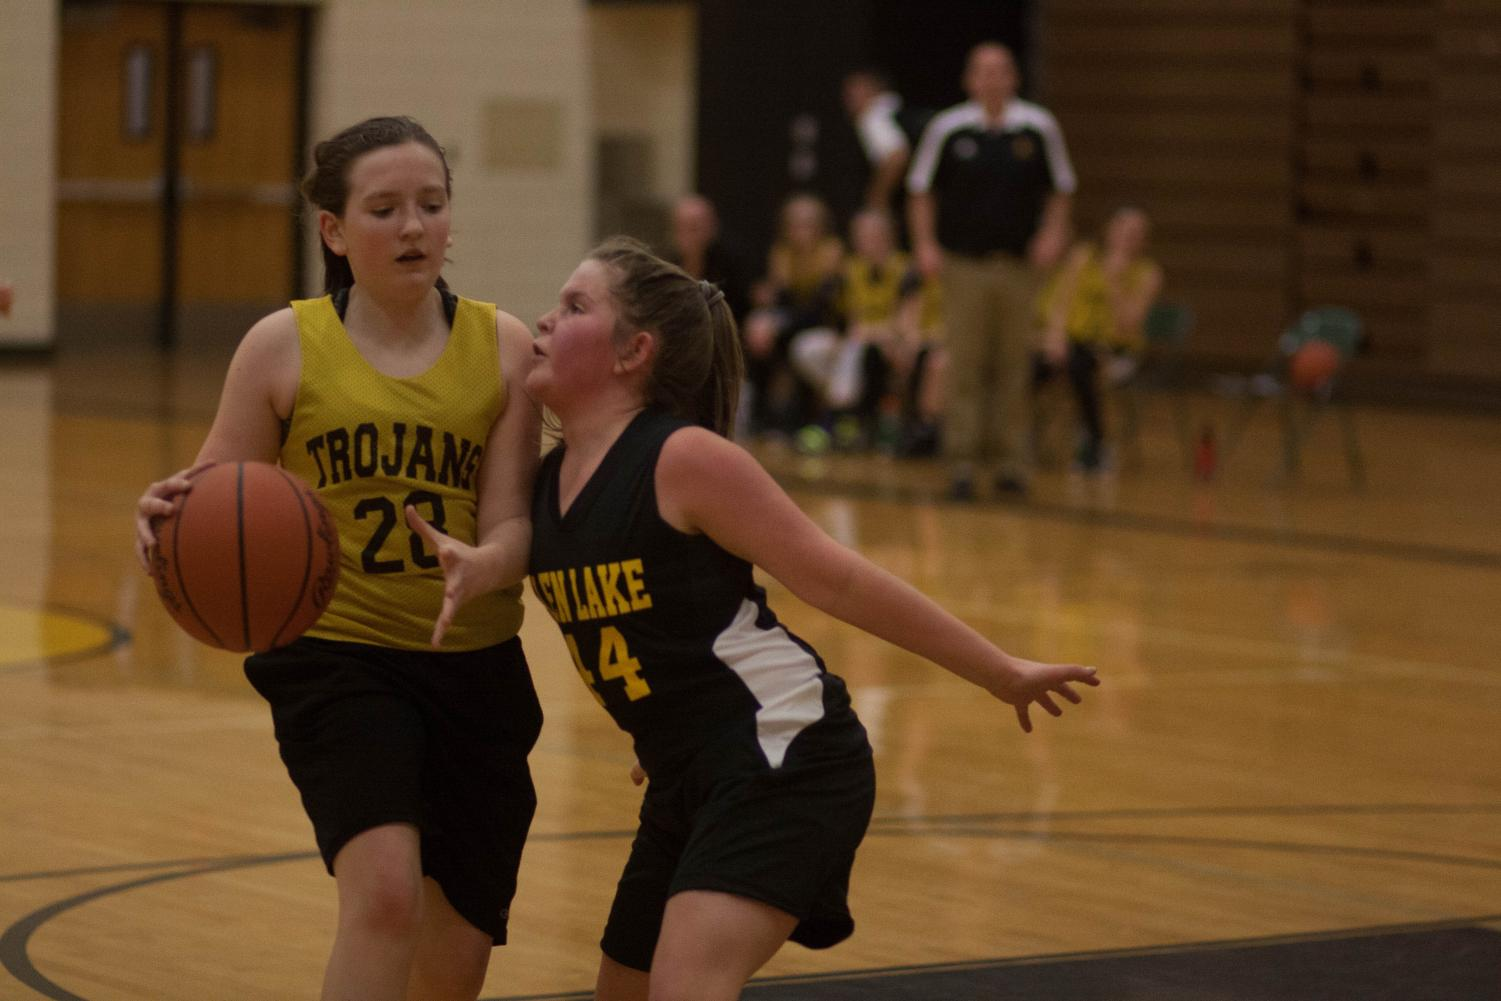 Sydney Rademacher protects the ball from Glen Lake player. Photo by Yearbook student, Lexi Minzey.